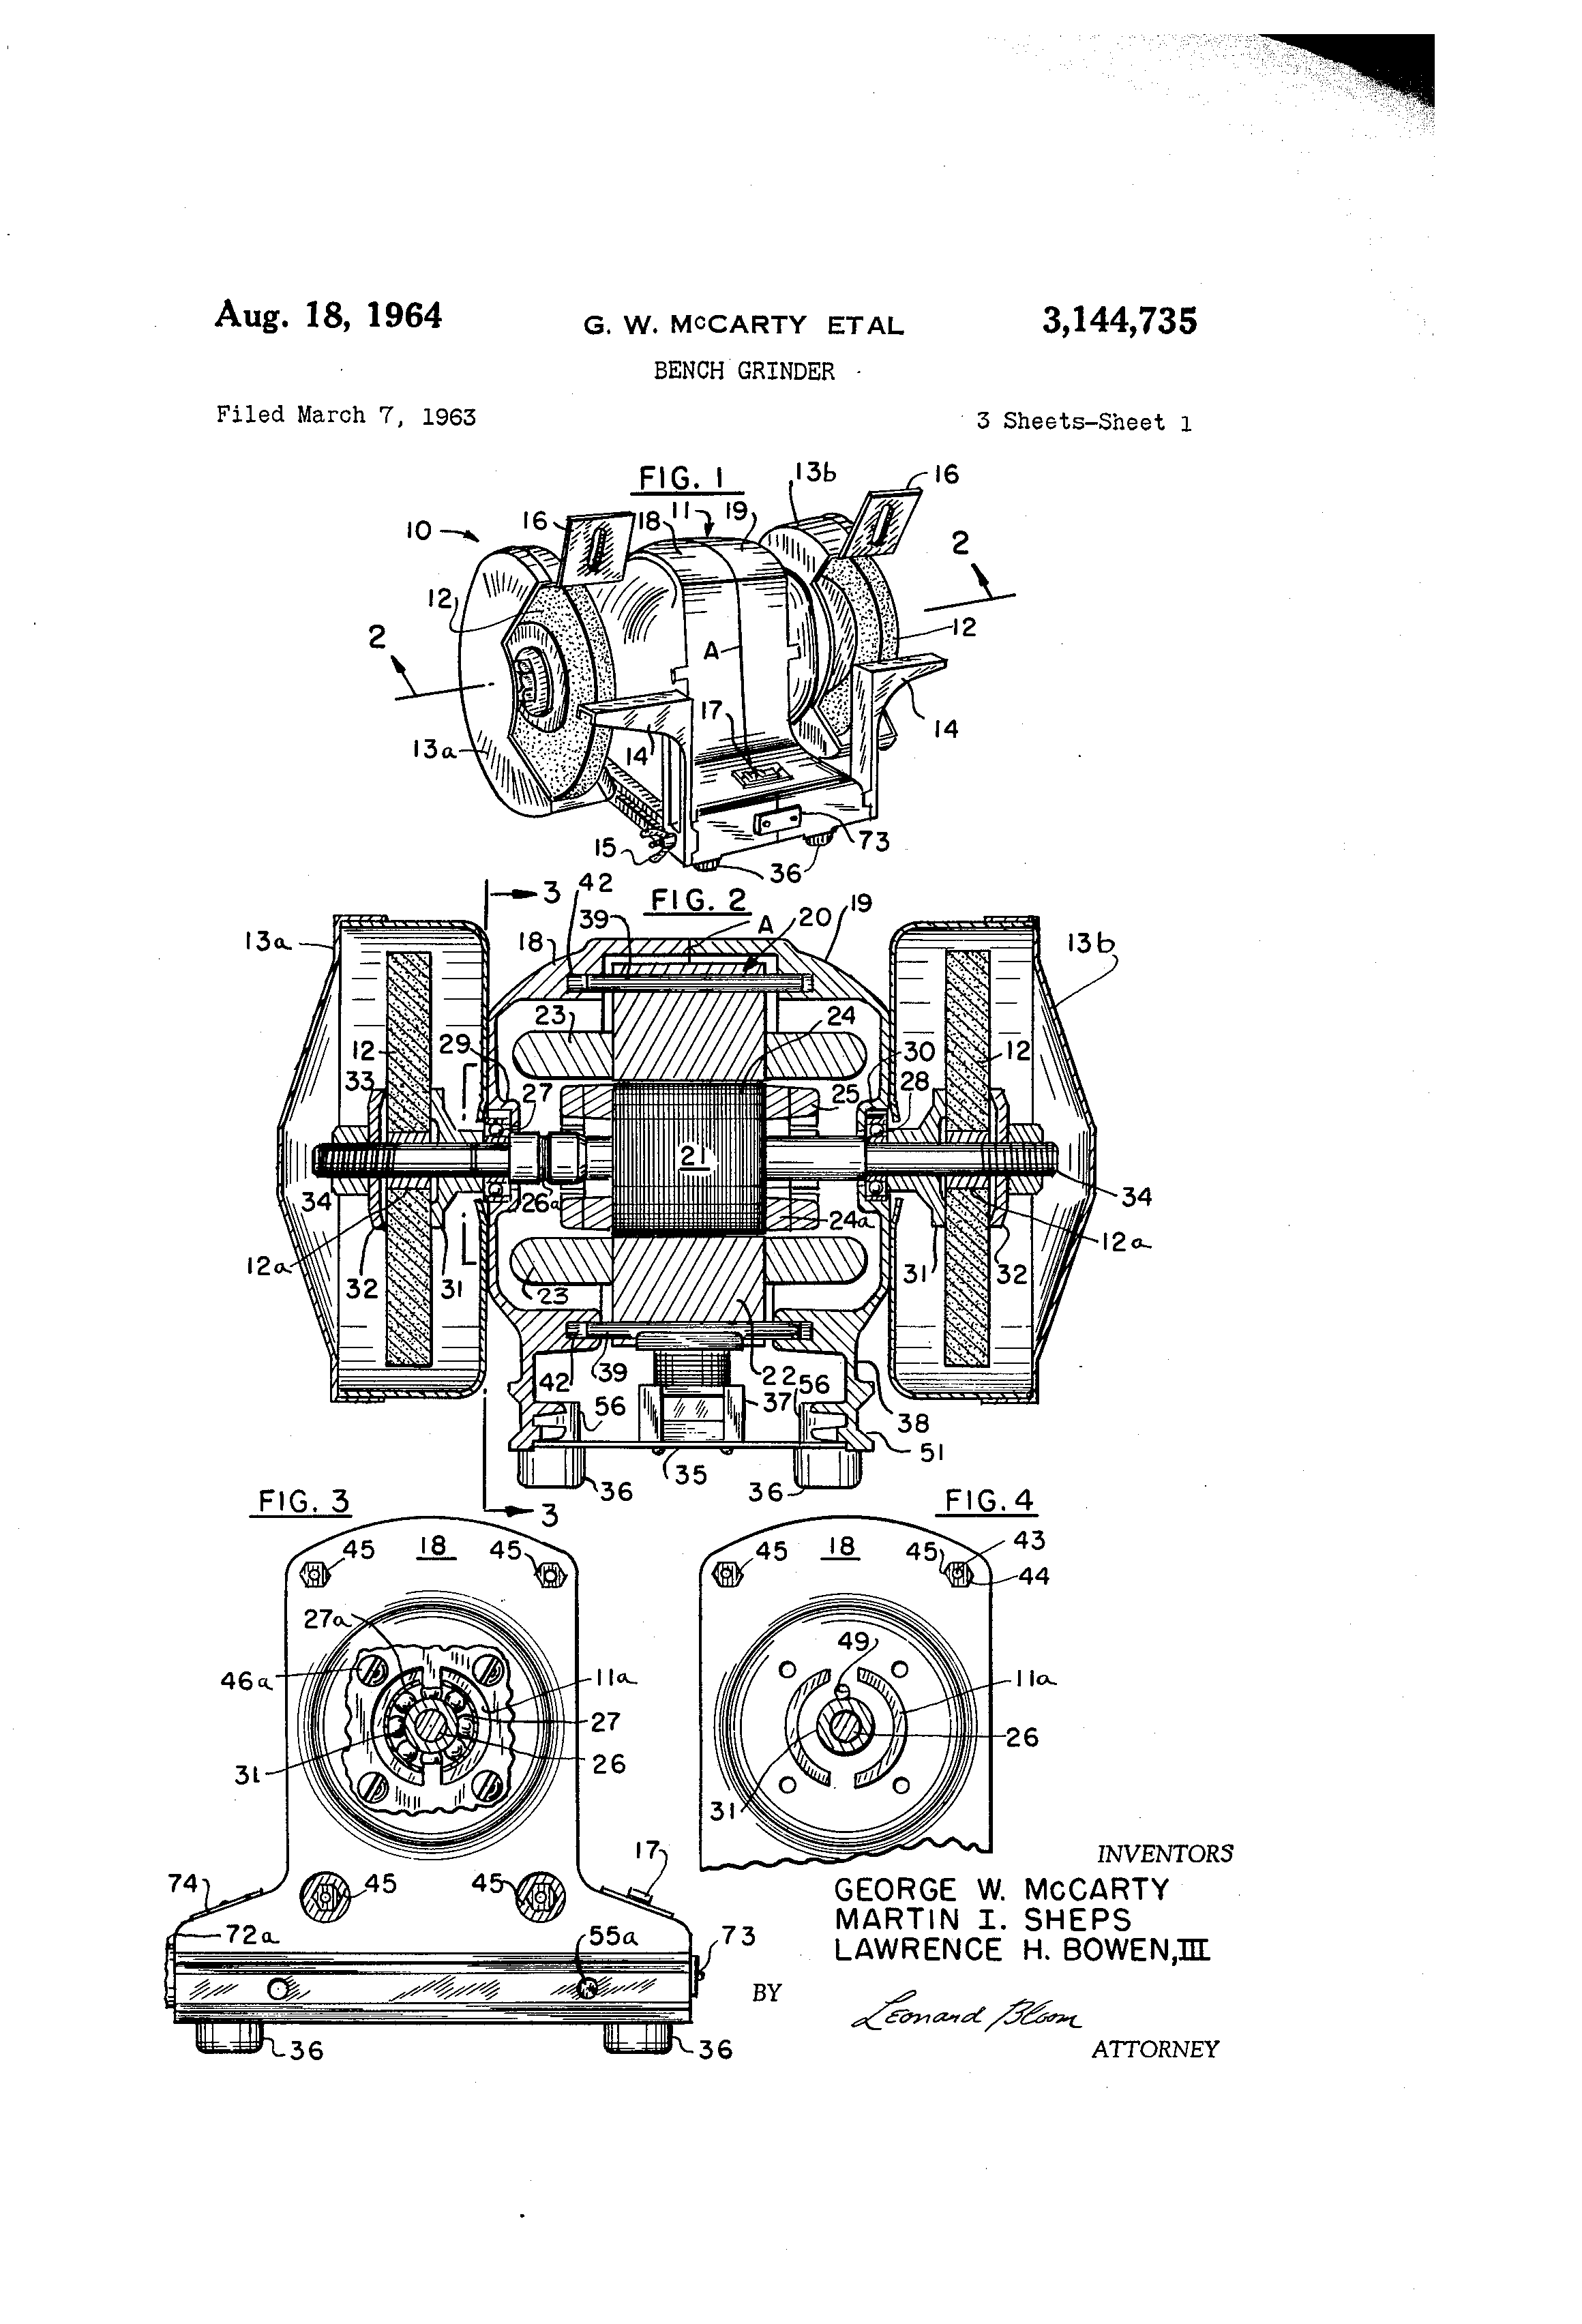 Jet Bg 6 Bench Grinder Wiring Diagram